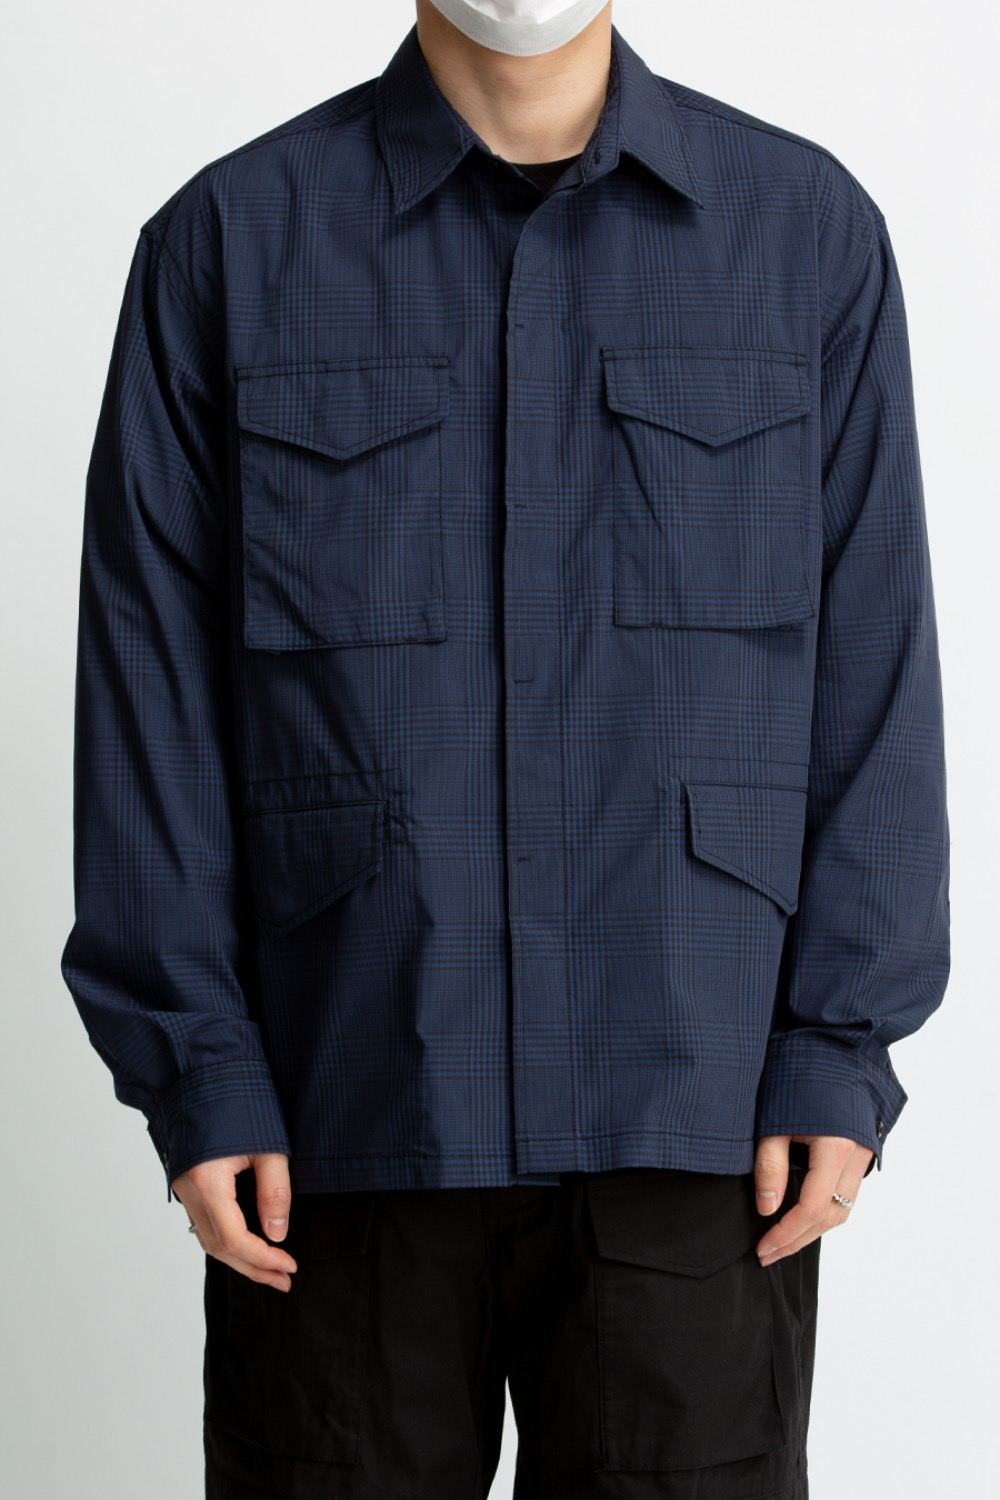 M65 SHIRT BLACK/NAVY CHECK